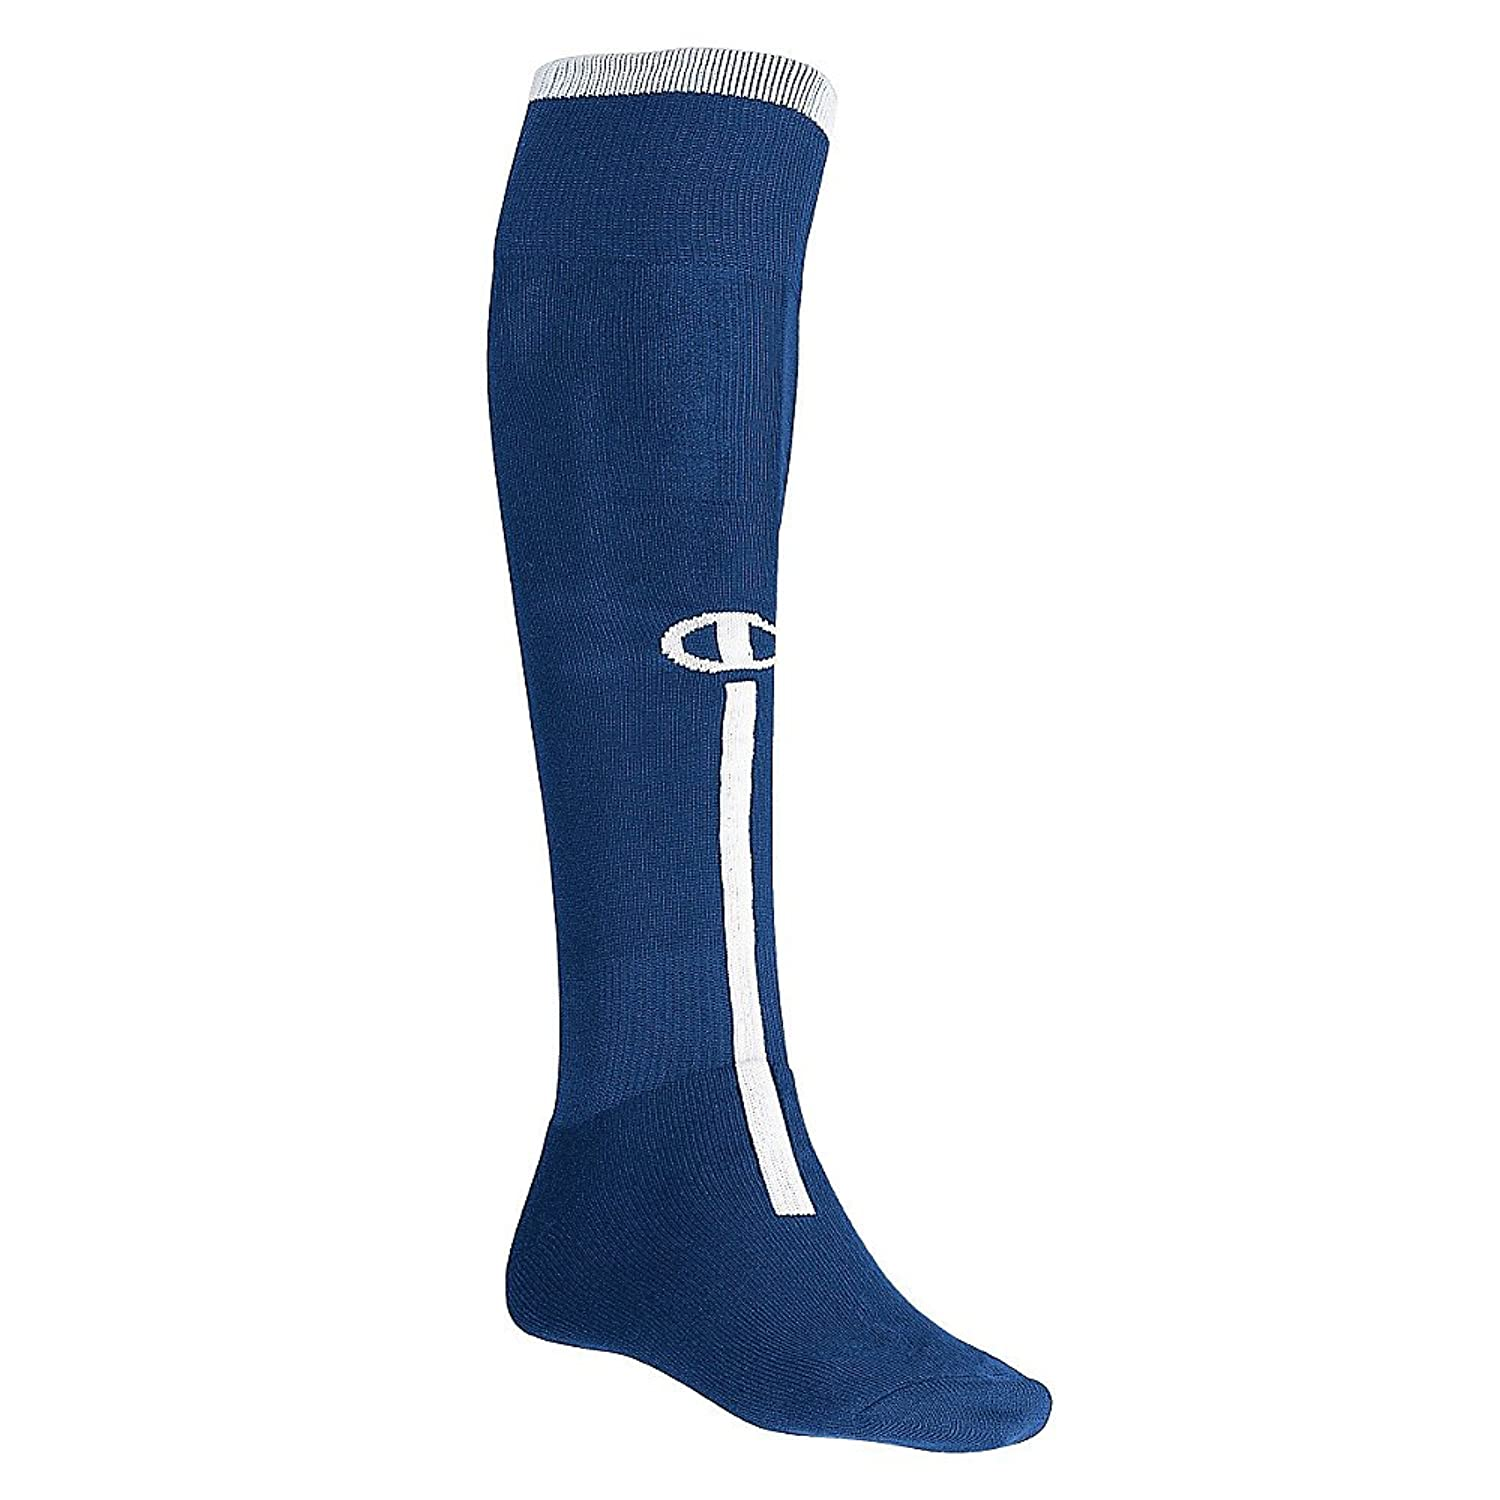 Champion Soccer Sock SCKS, Athletic Royal/White, M-L газонокосилка бензиновая champion lm5127bs